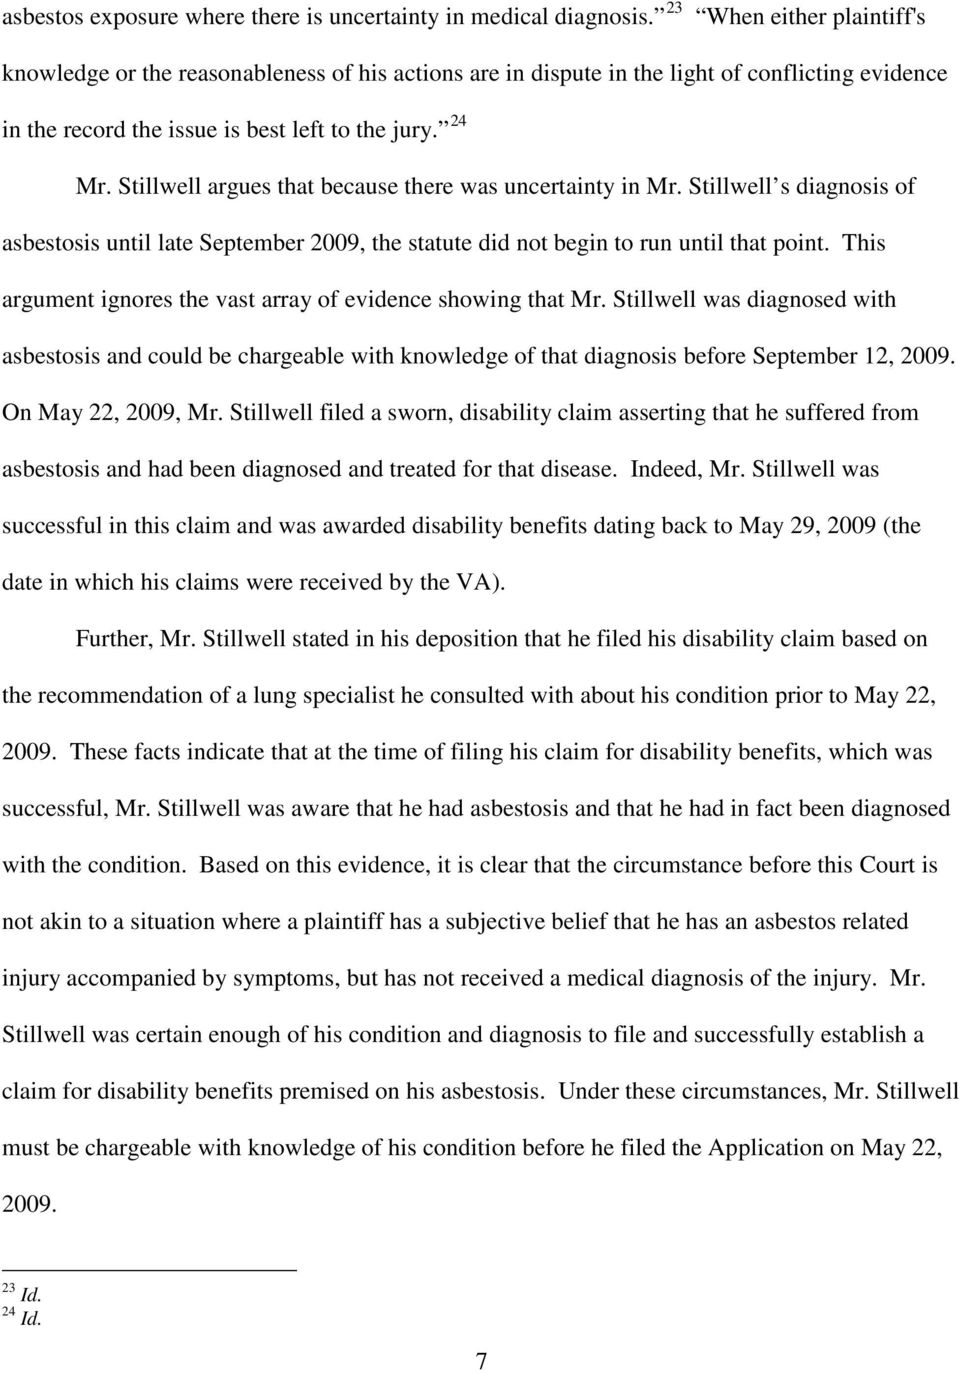 Stillwell argues that because there was uncertainty in Mr. Stillwell s diagnosis of asbestosis until late September 2009, the statute did not begin to run until that point.